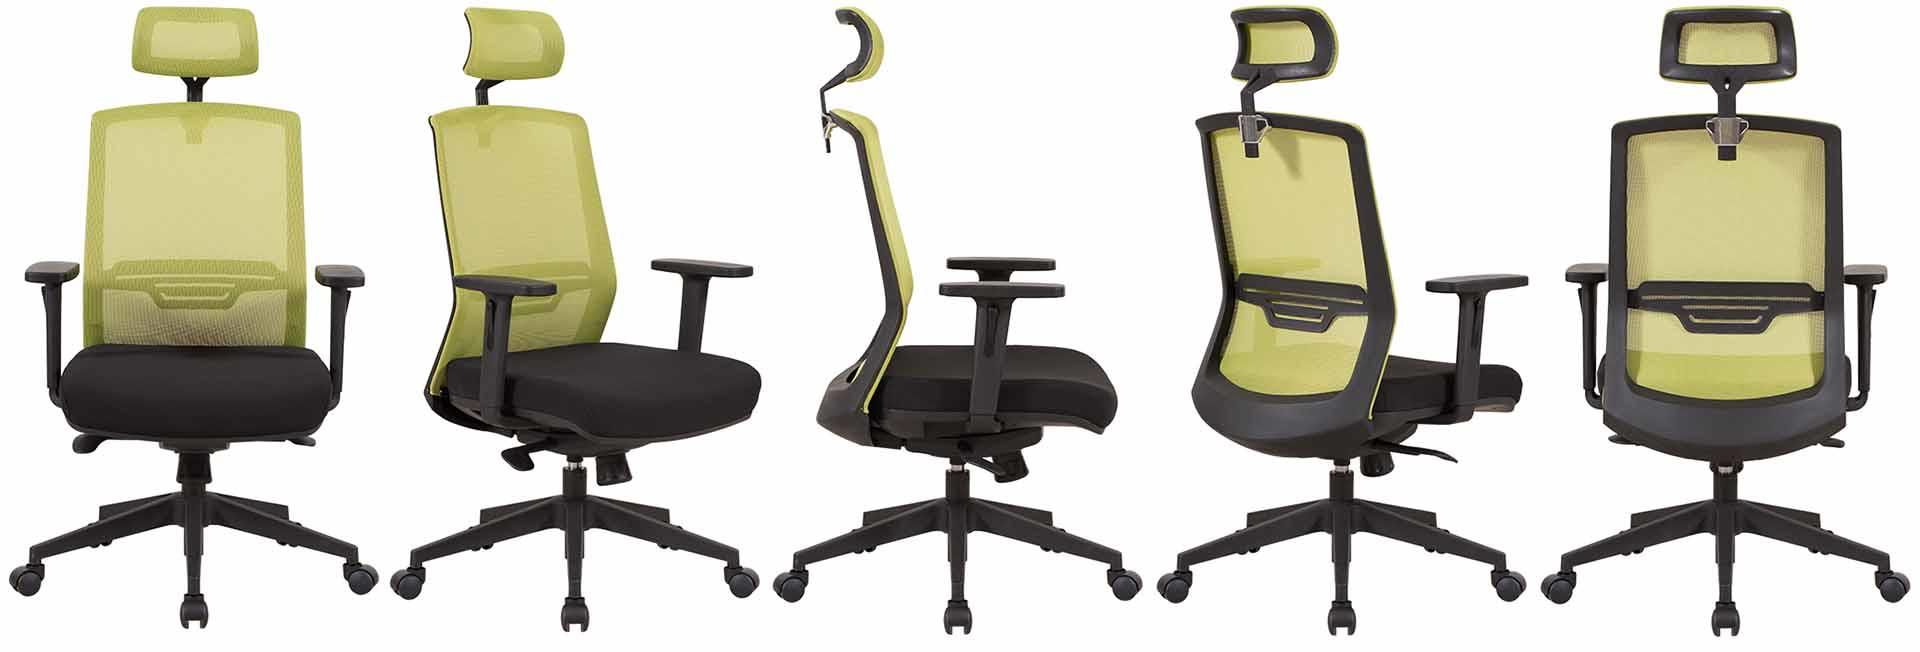 low cost where to buy ergonomic office chairs task free design for office-1